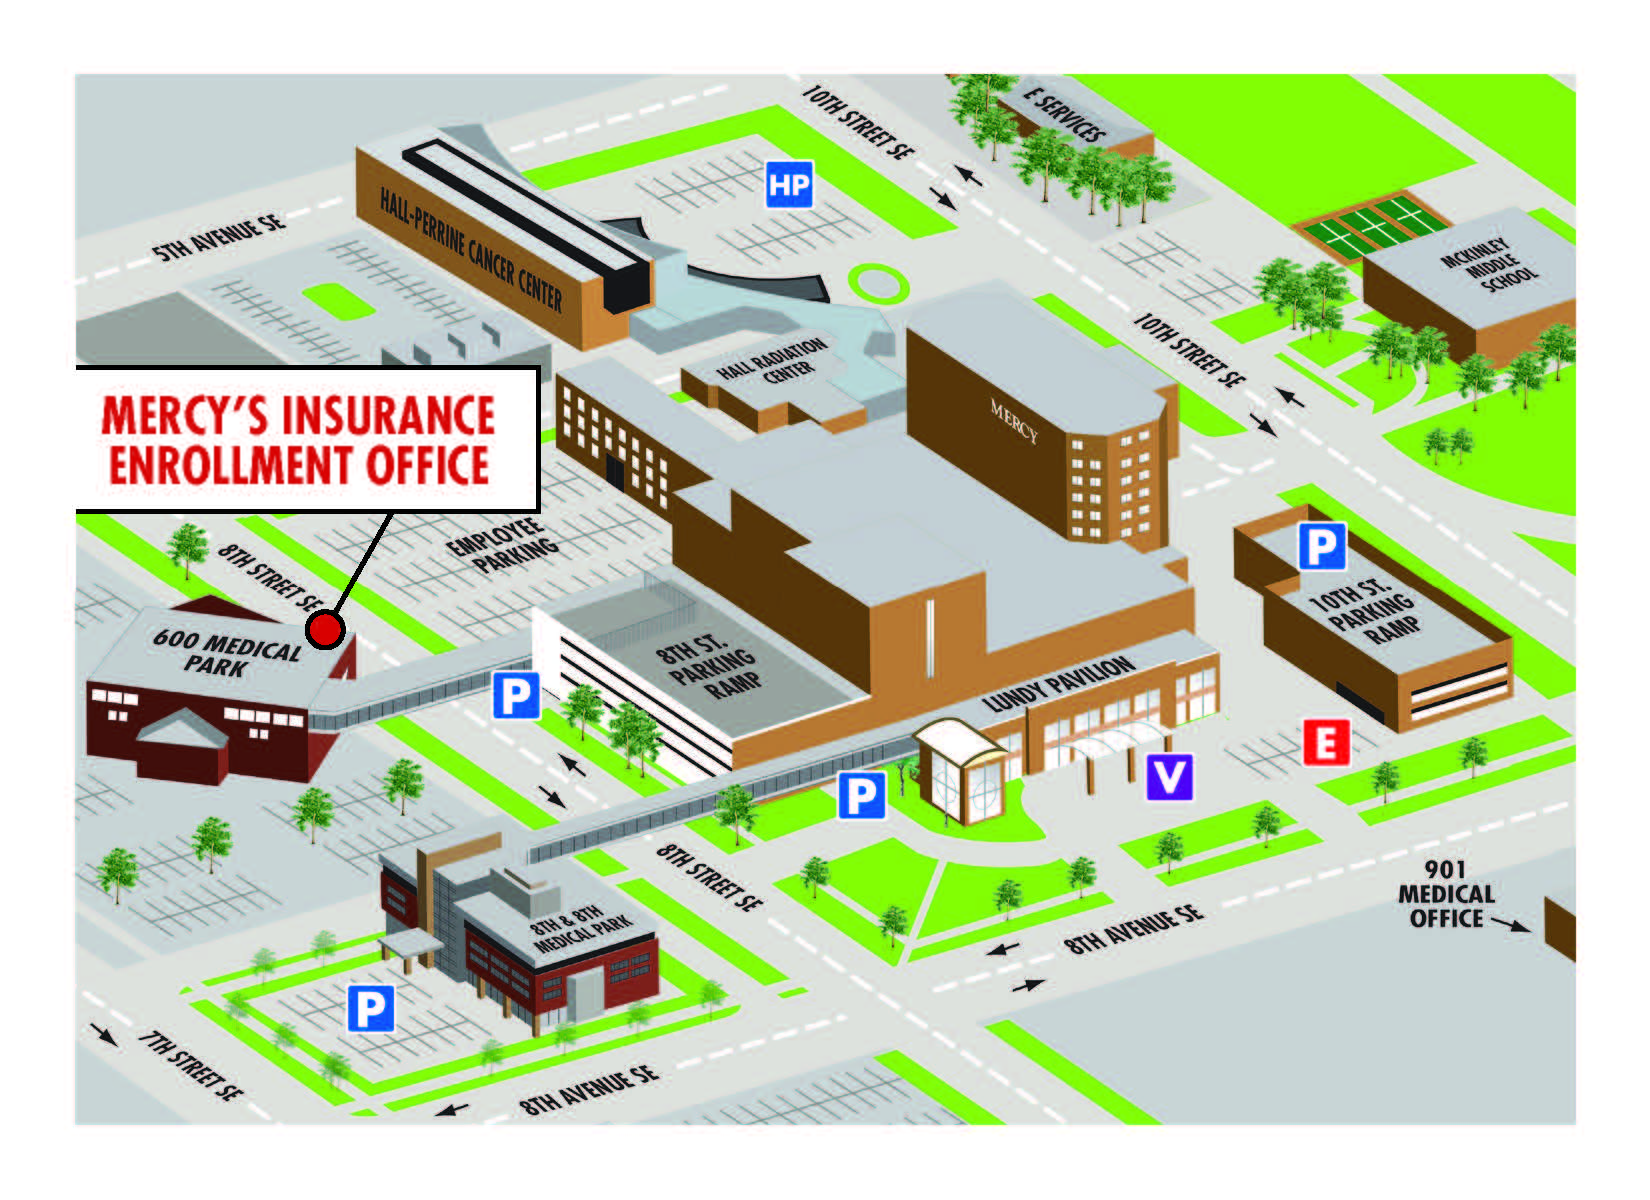 Mercy Insurance Office Map